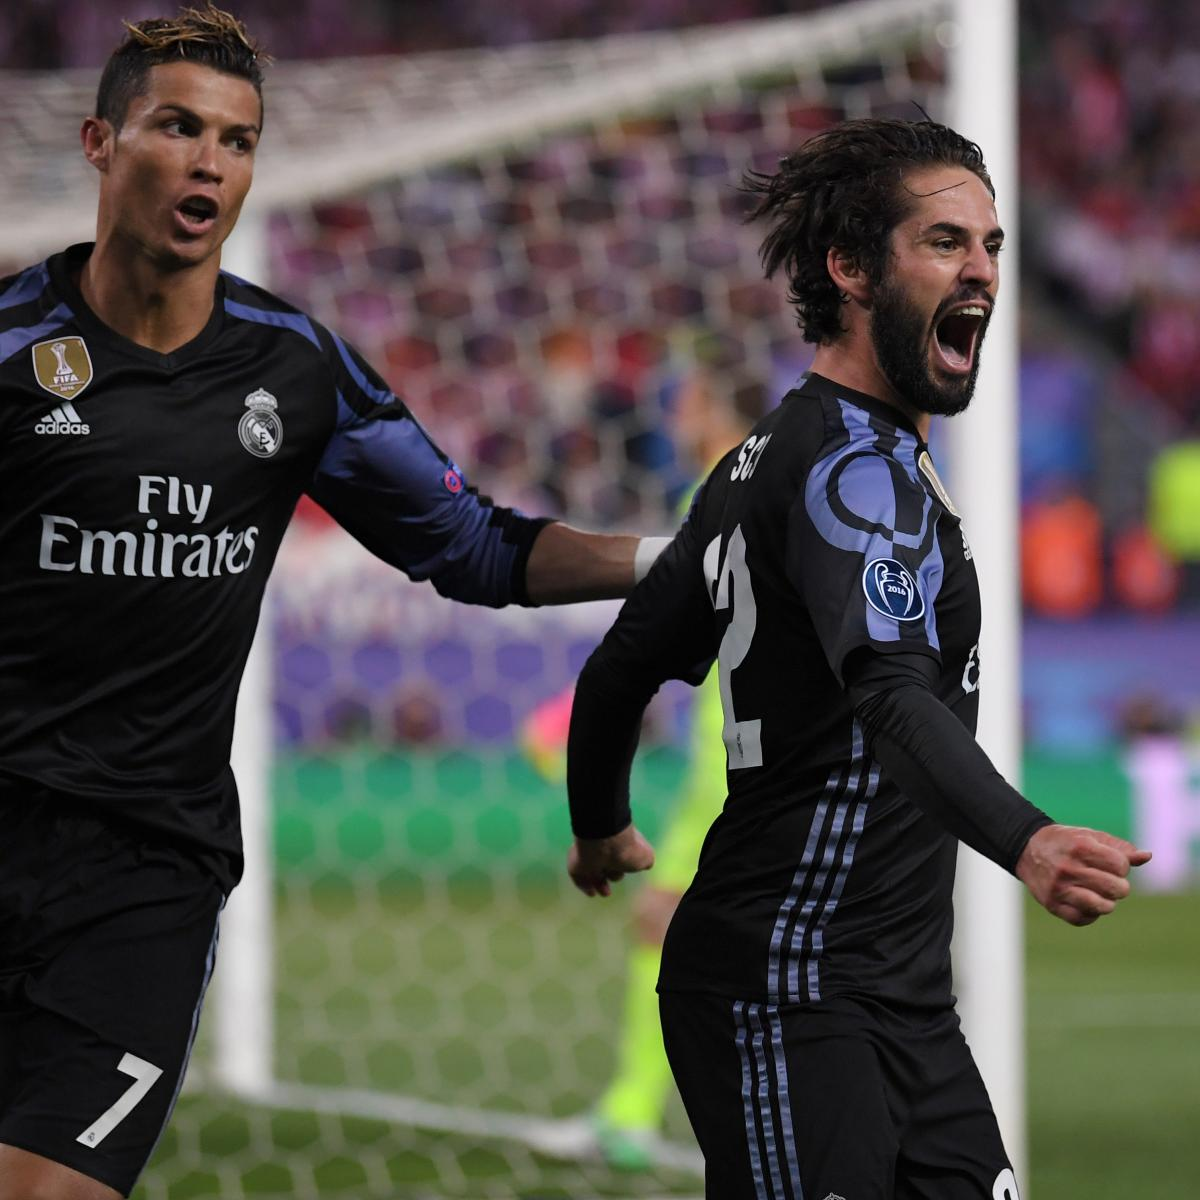 Malaga Vs. Real Madrid: Team News, Preview, Live Stream